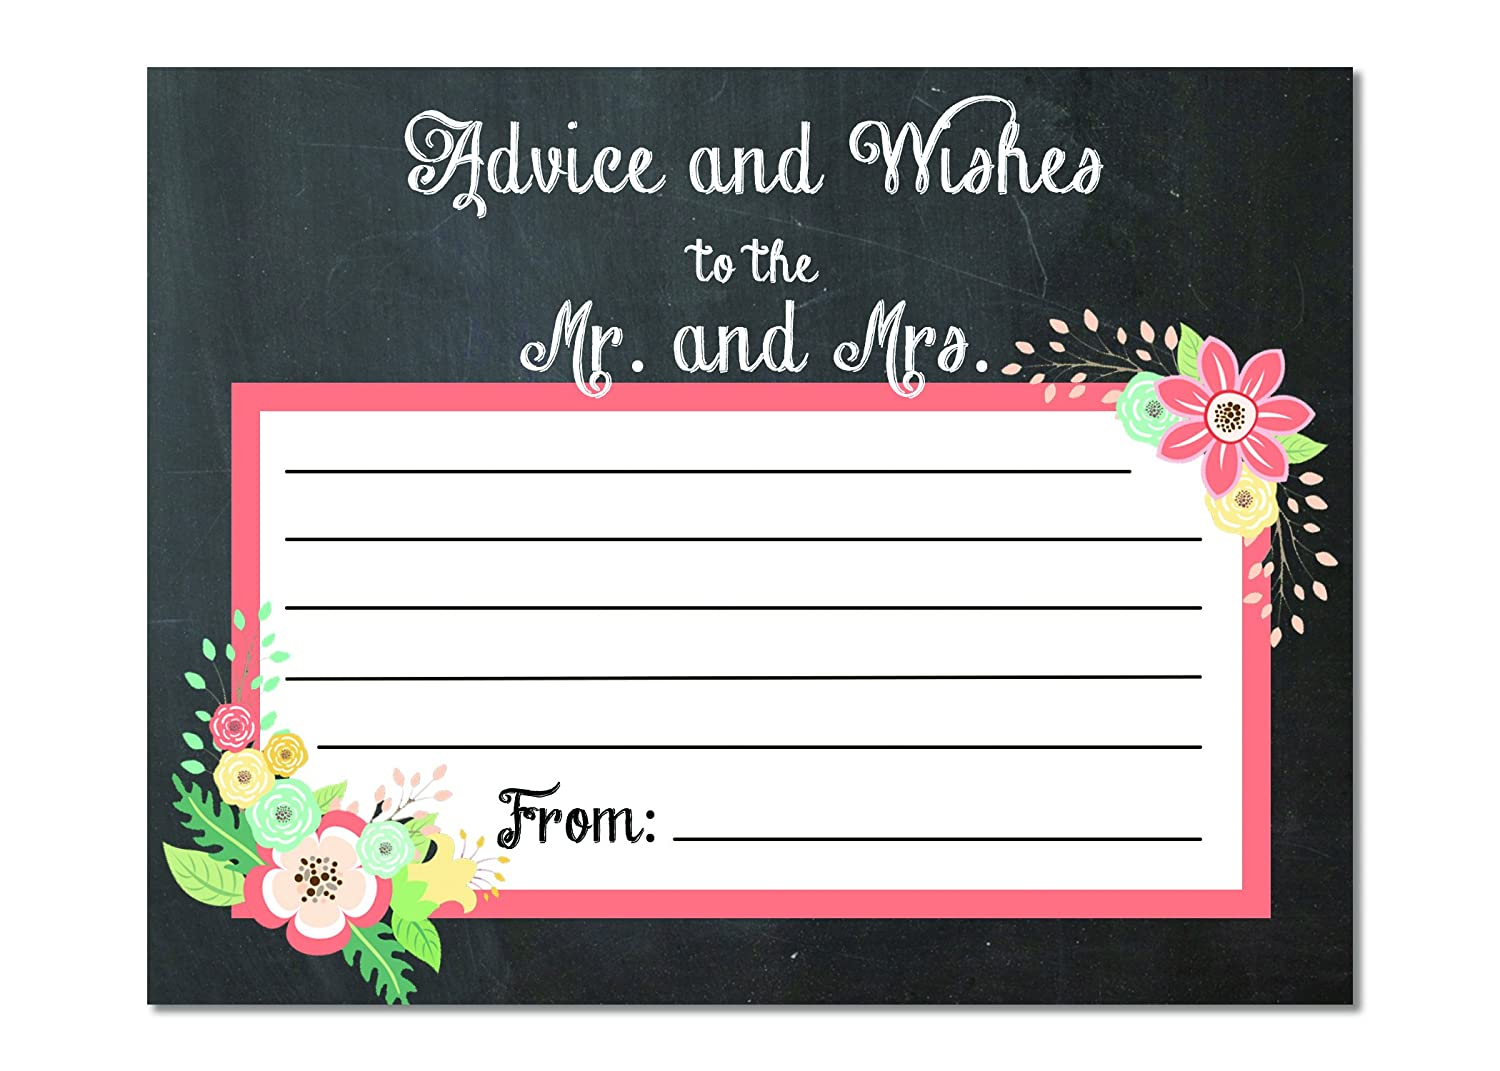 Engagement Party Games Bridal Shower Activity Wedding Advice Cards Advice for the Bride and Groom Advice Cards Set of 25 Bridal Shower Games